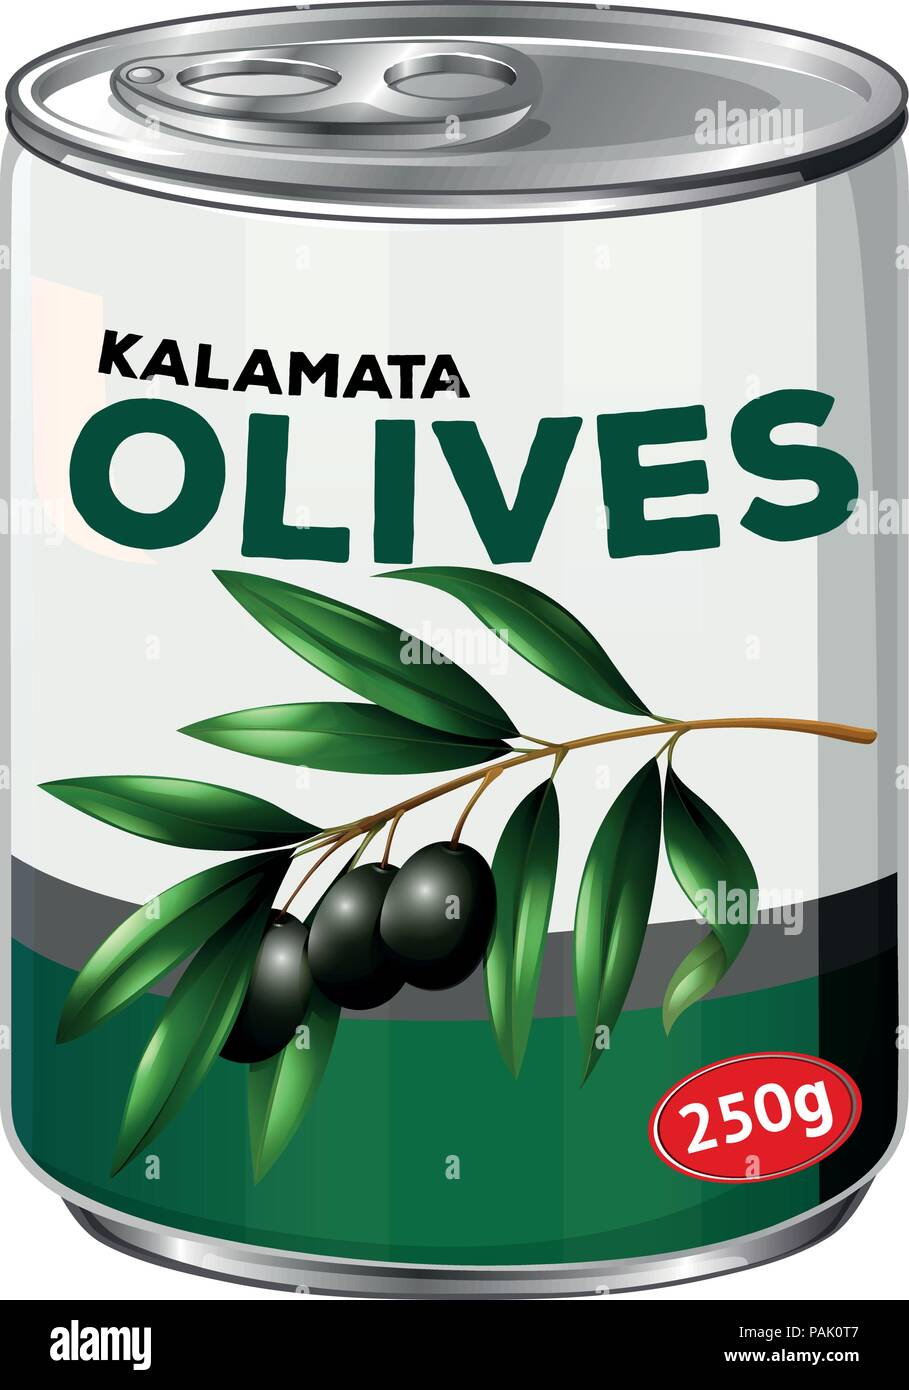 A tin of kalamata olives illustration - Stock Vector